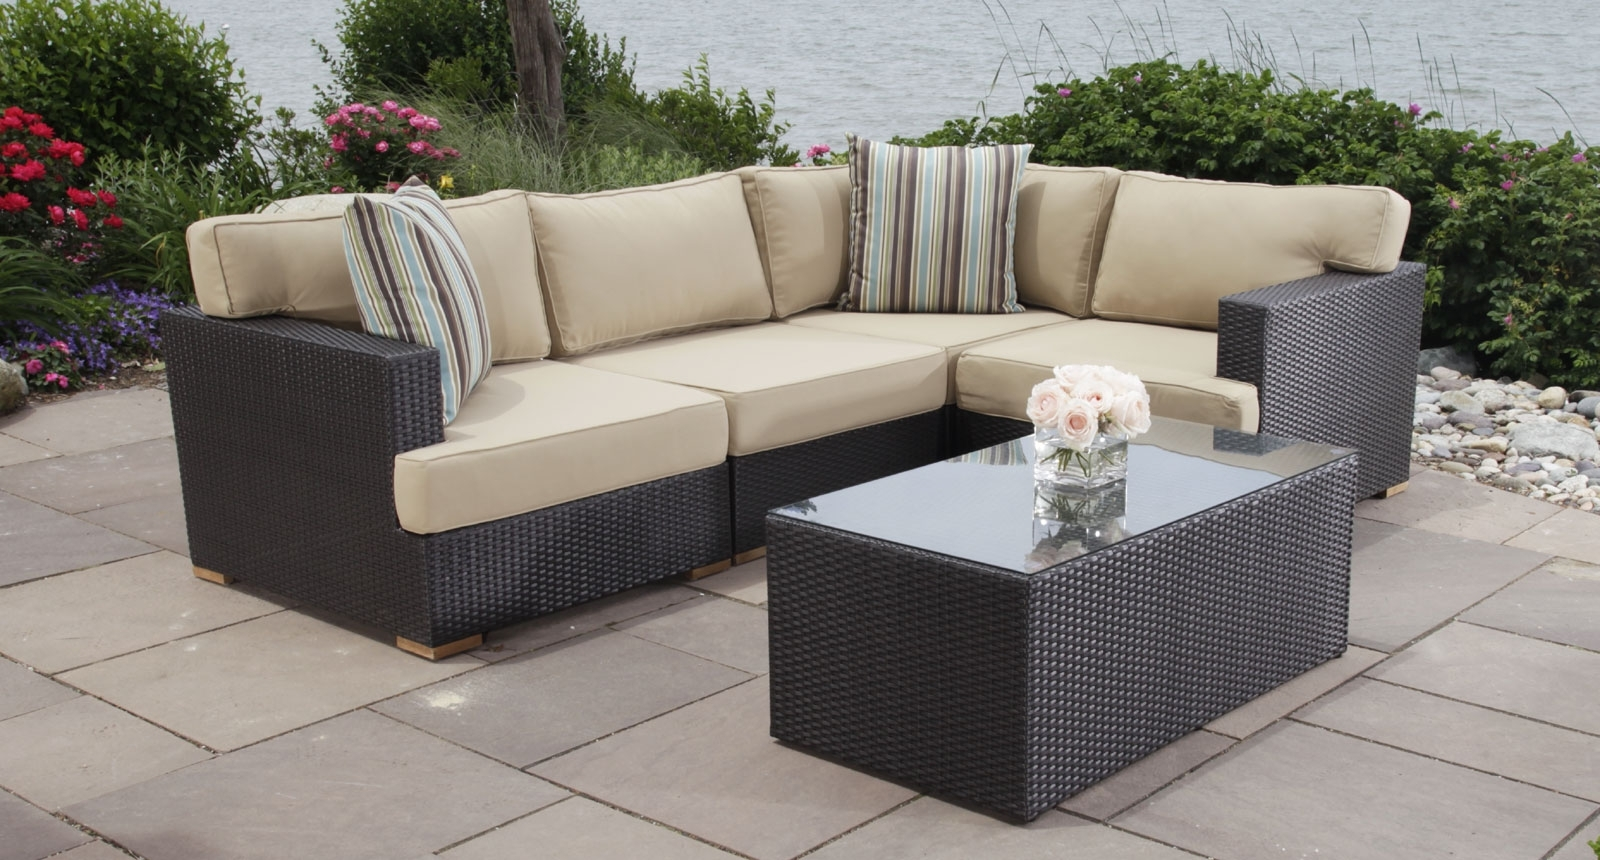 Outdoor Sectional Cover Amazon Waterproof Patio Furniture Covers With Newest Sectional Sofas At Amazon (View 12 of 20)